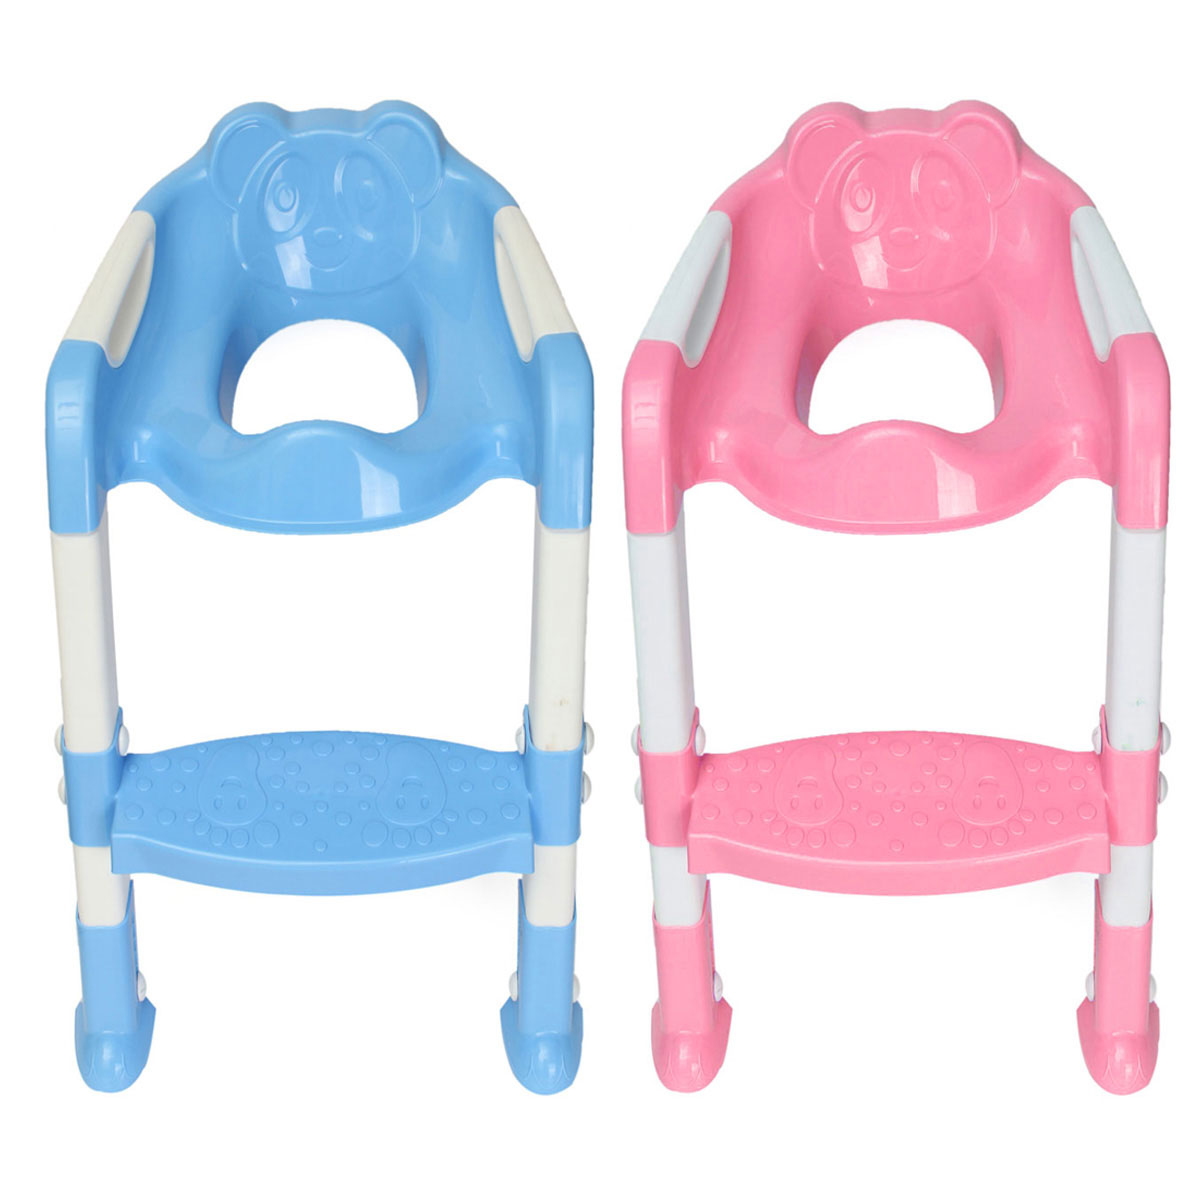 Kids potty toilet training safety adjustable ladder seat chair step